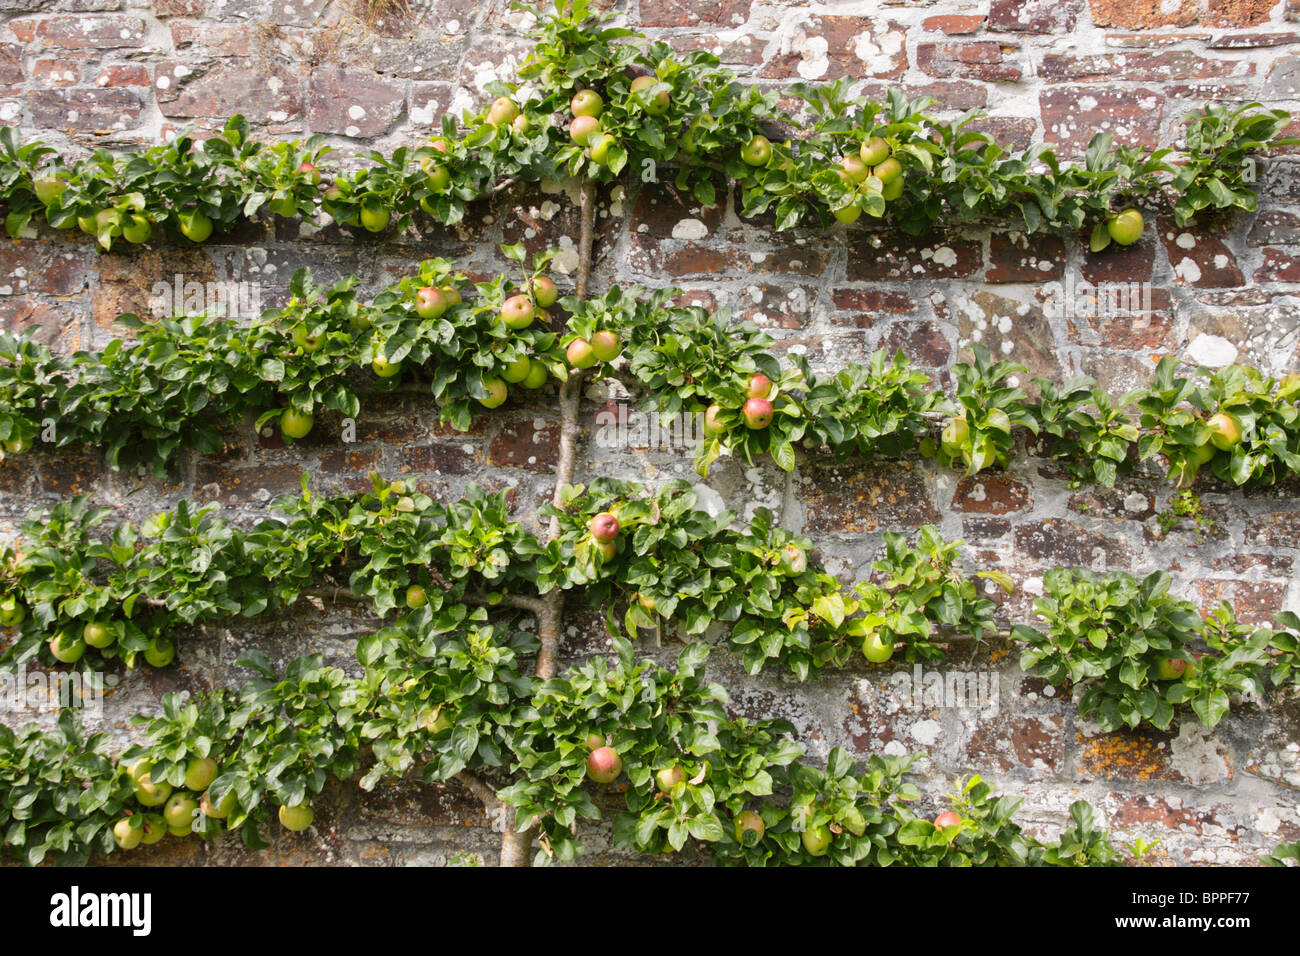 Apple Tree Trained To Grow As An Espalier Tree Against A Garden Wall.